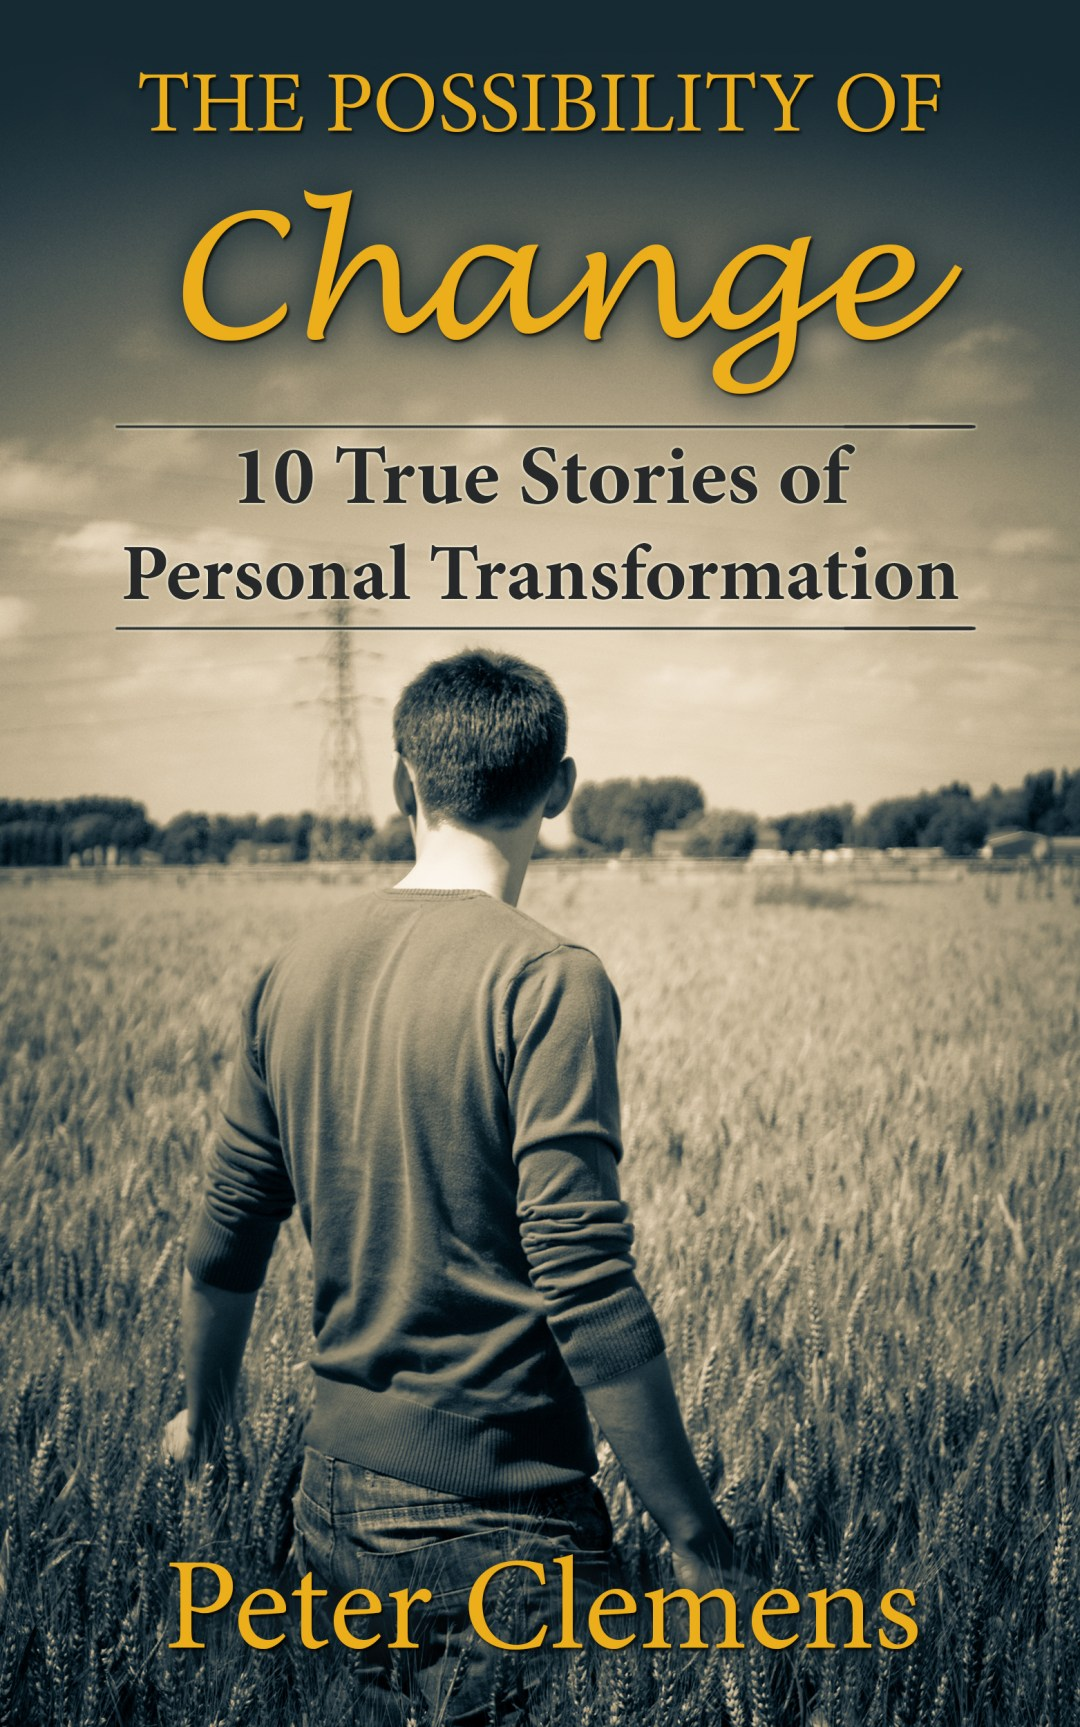 10 True Stories of Personal Transformation